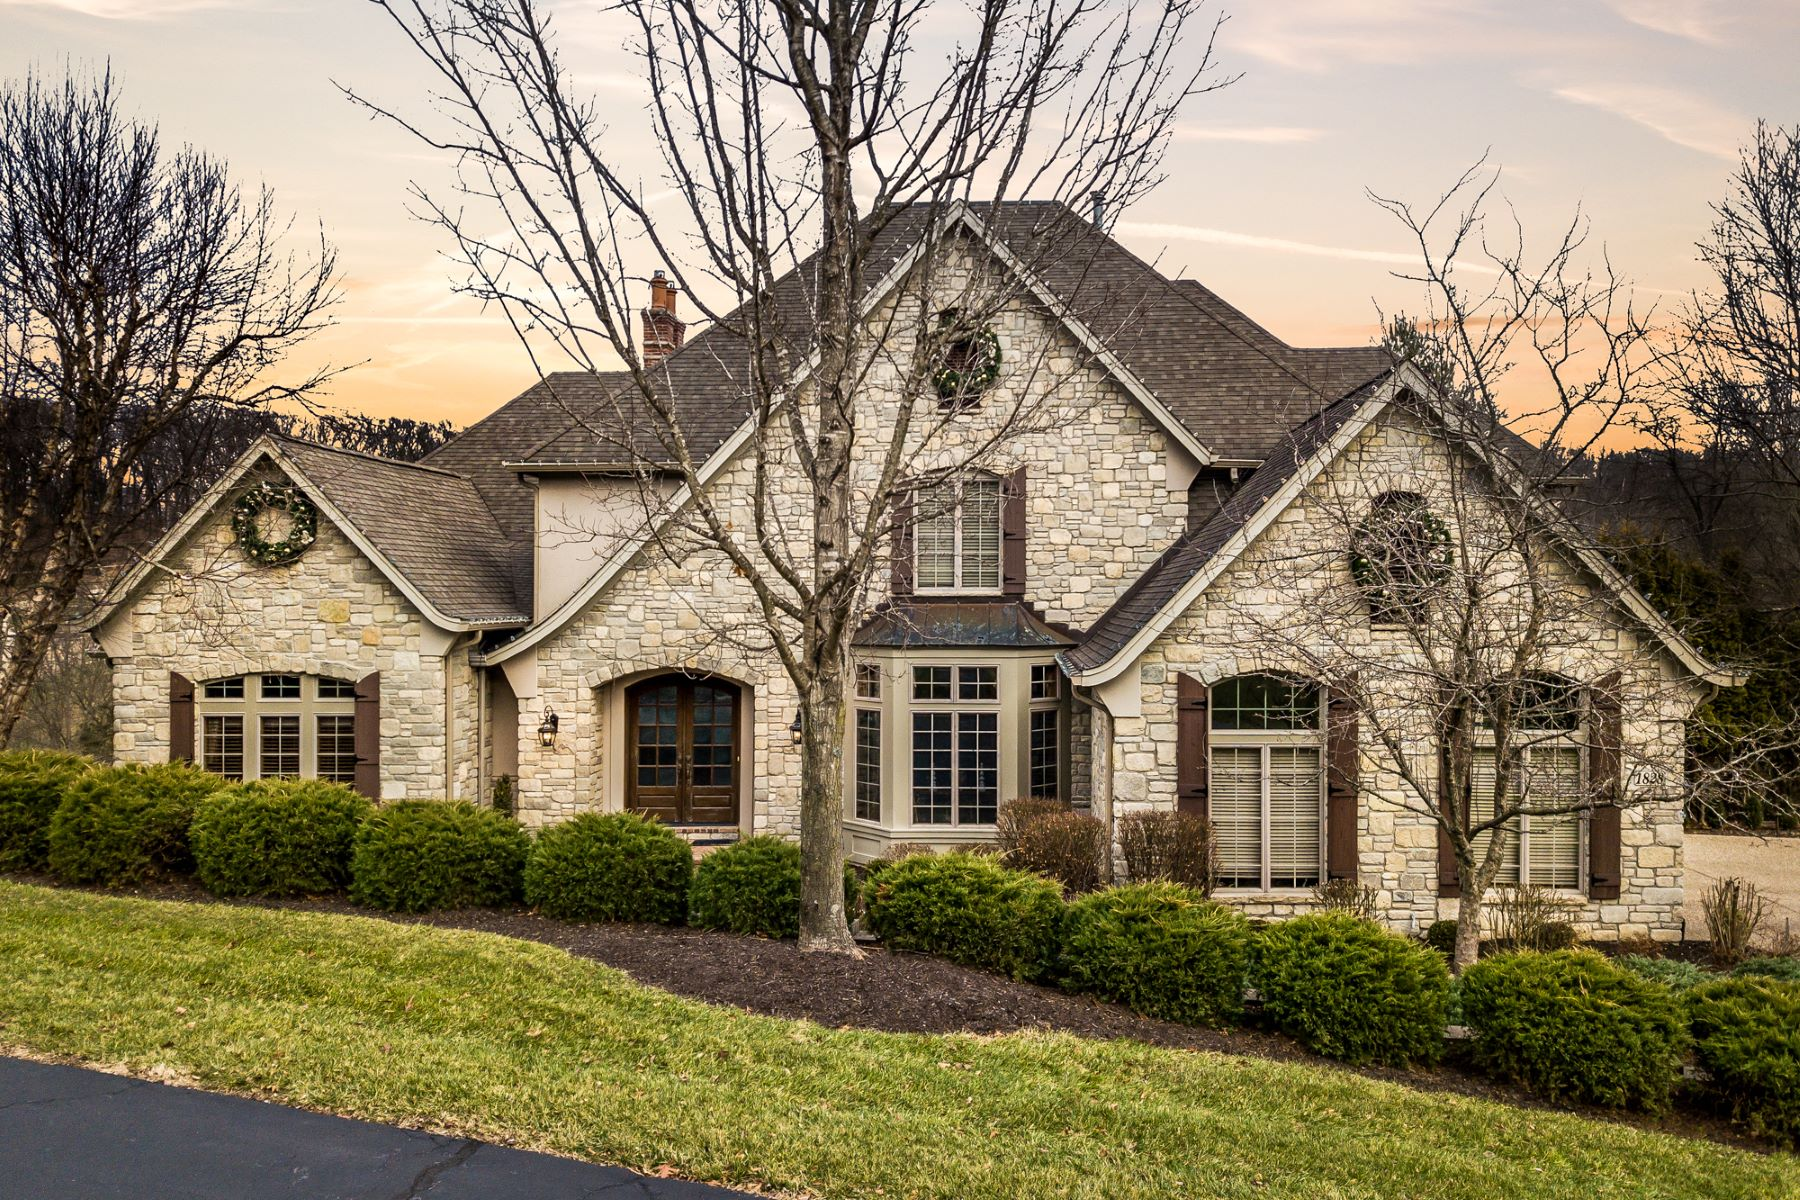 Single Family Homes for Sale at Suburban Living on 2.9 Wooded Acres 1828 Wills Trace Ridge Wildwood, Missouri 63005 United States